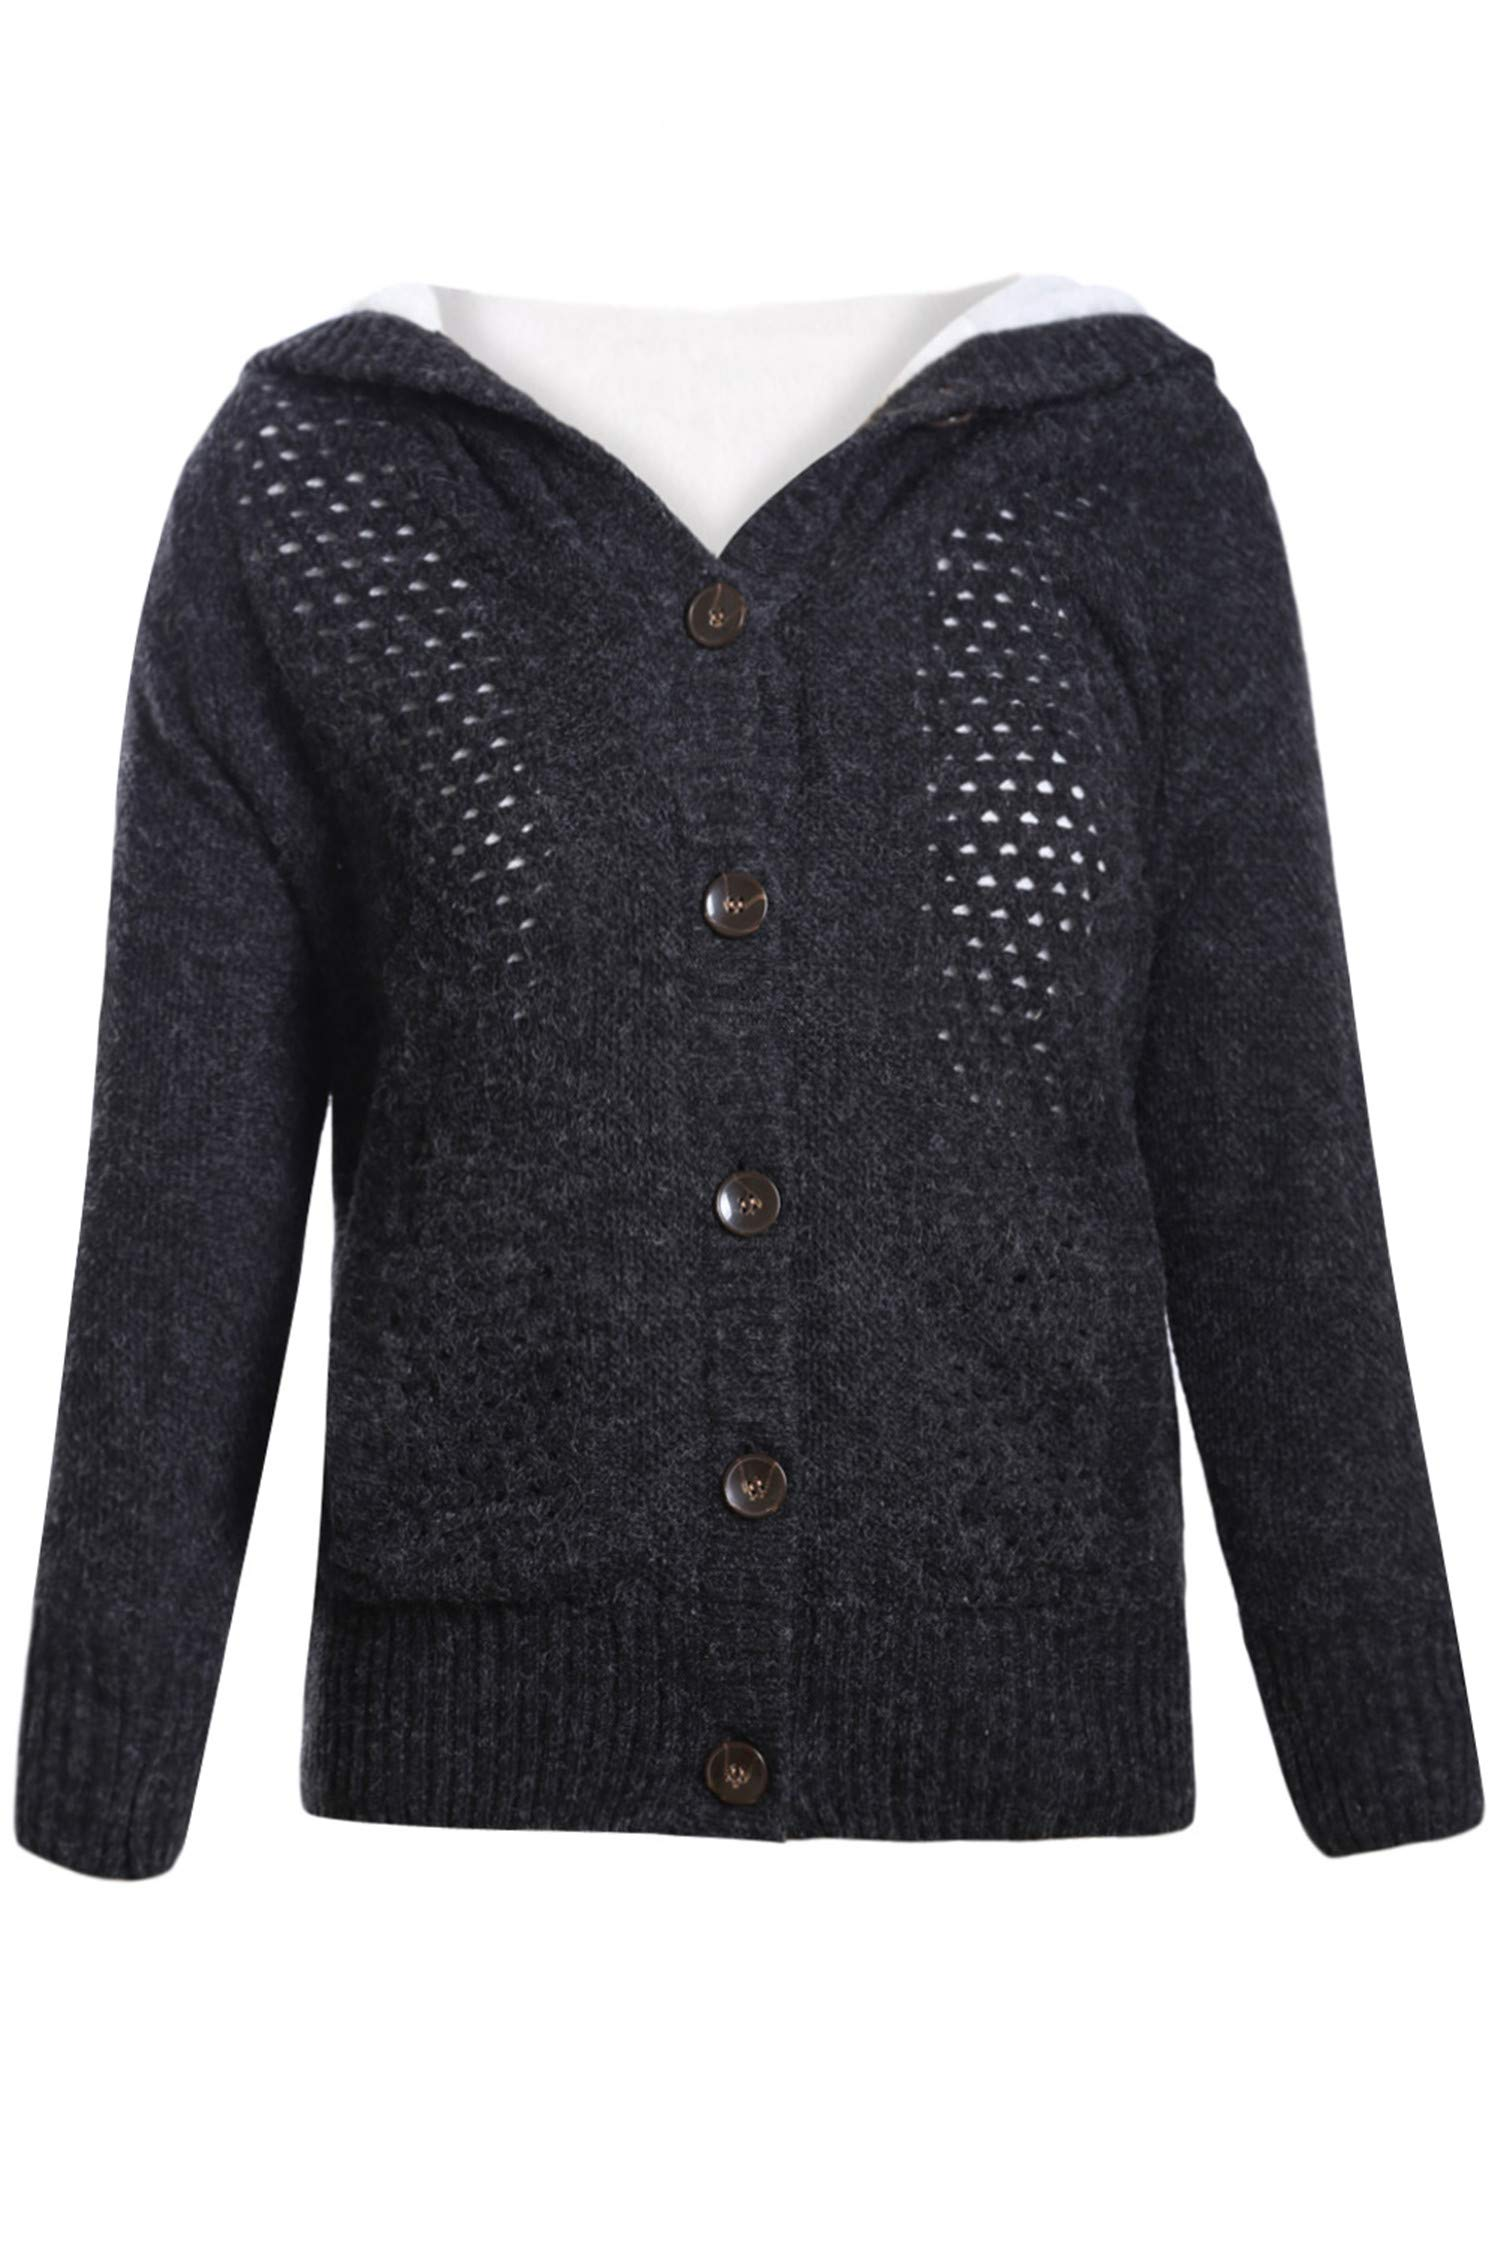 Blibea Womens Casual Long Sleeve Hooded Knit Cardigans Button Down Cable Sweater Coats with Pockets Small Black